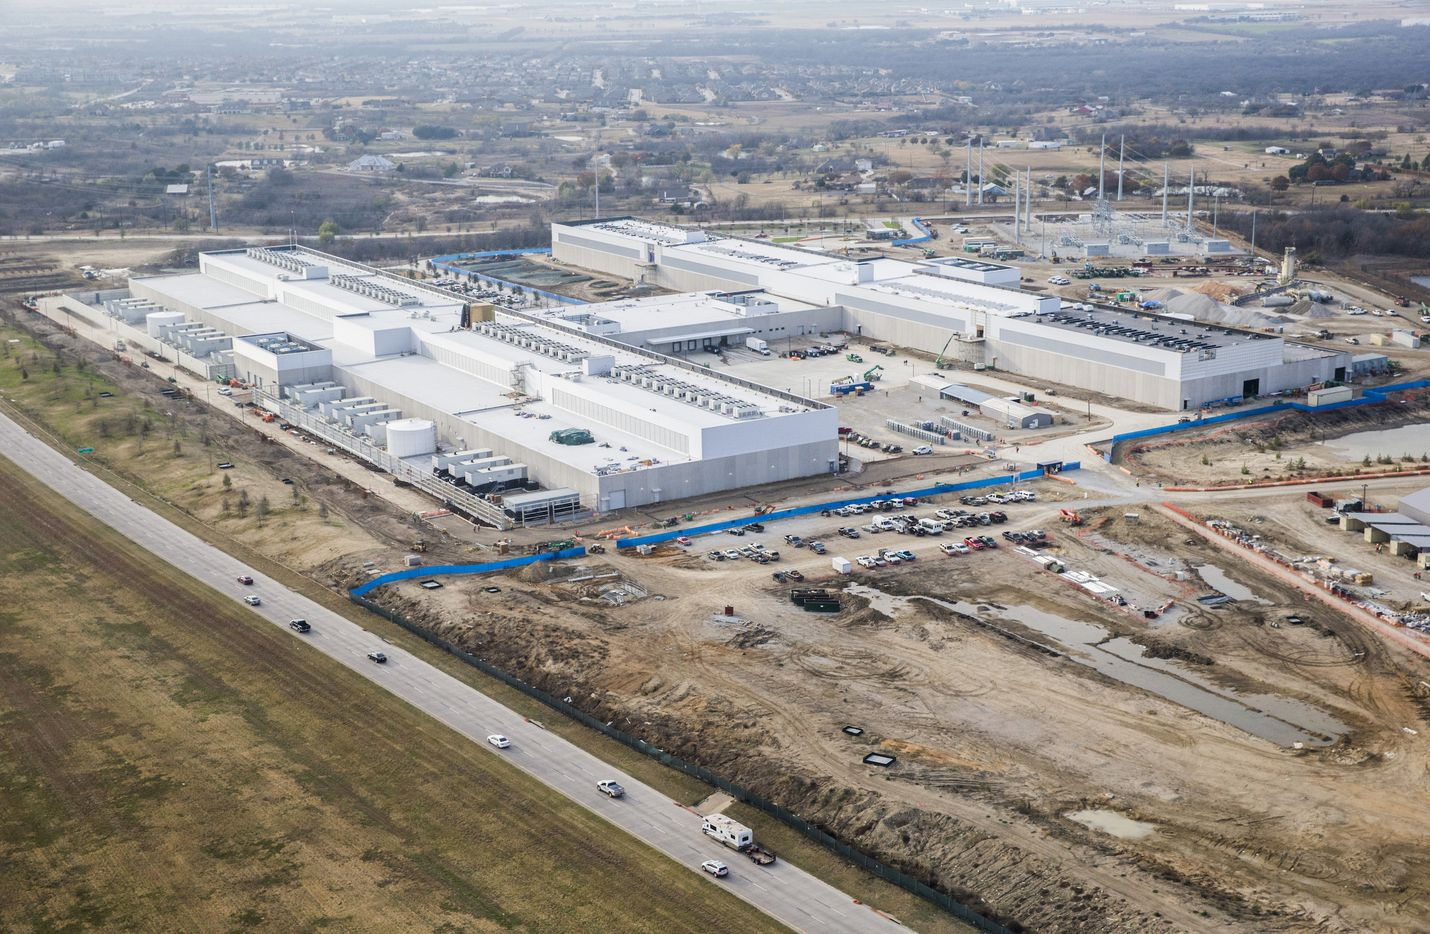 The expansion will be located next to the first phase of the new  Facebook Data Center, which is part of the Alliance Texas development.